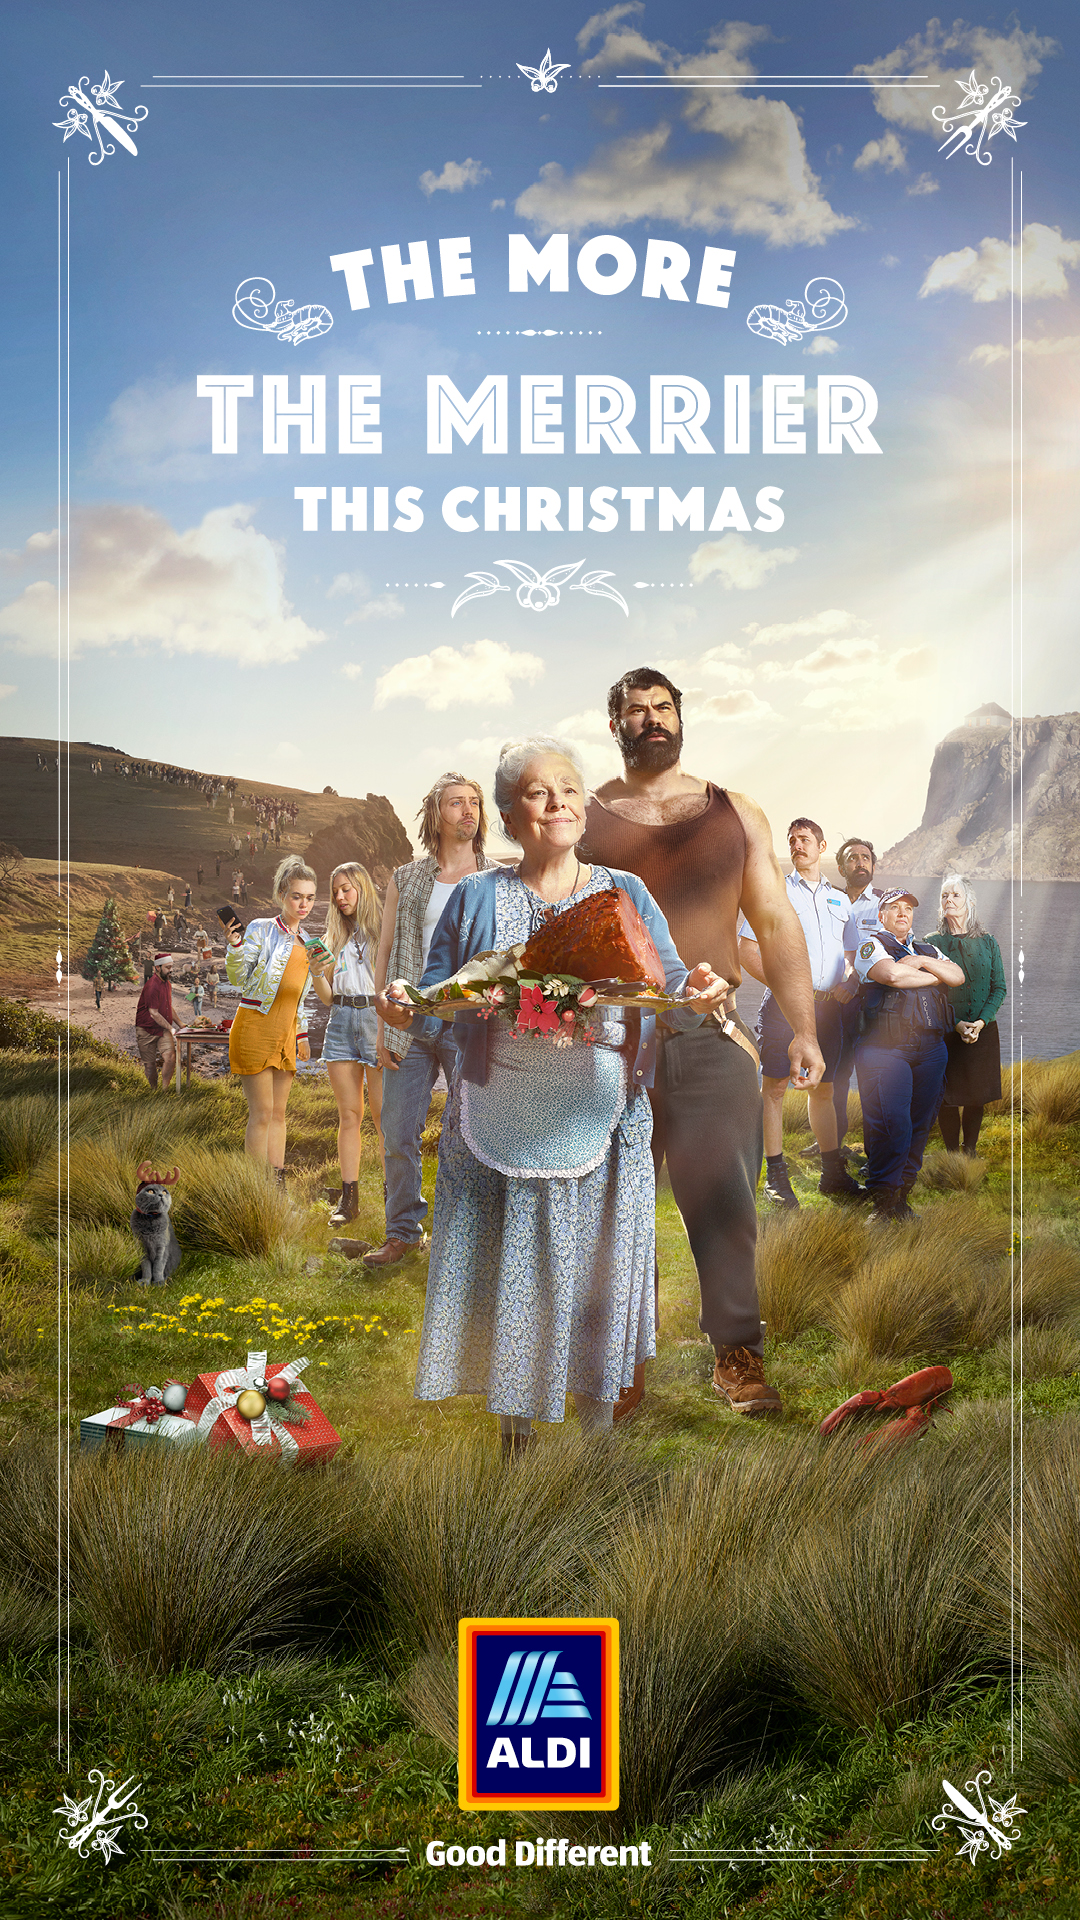 ALDI unveils the miracle ham in new 'The More The Merrier' 2019 Christmas campaign via BMF Sydney